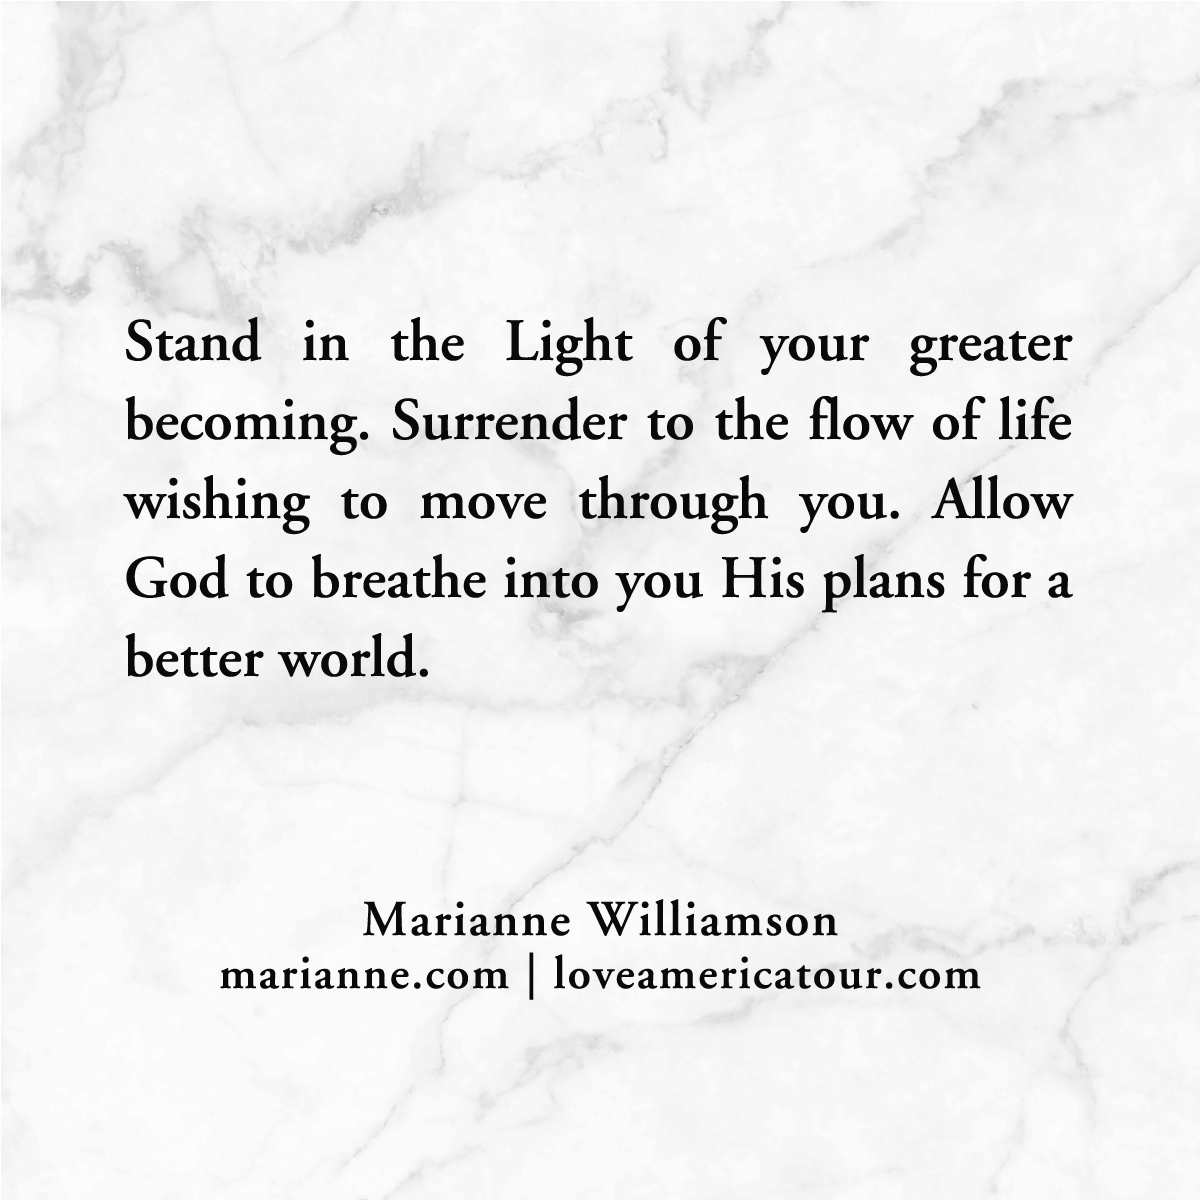 Marianne williamson poems